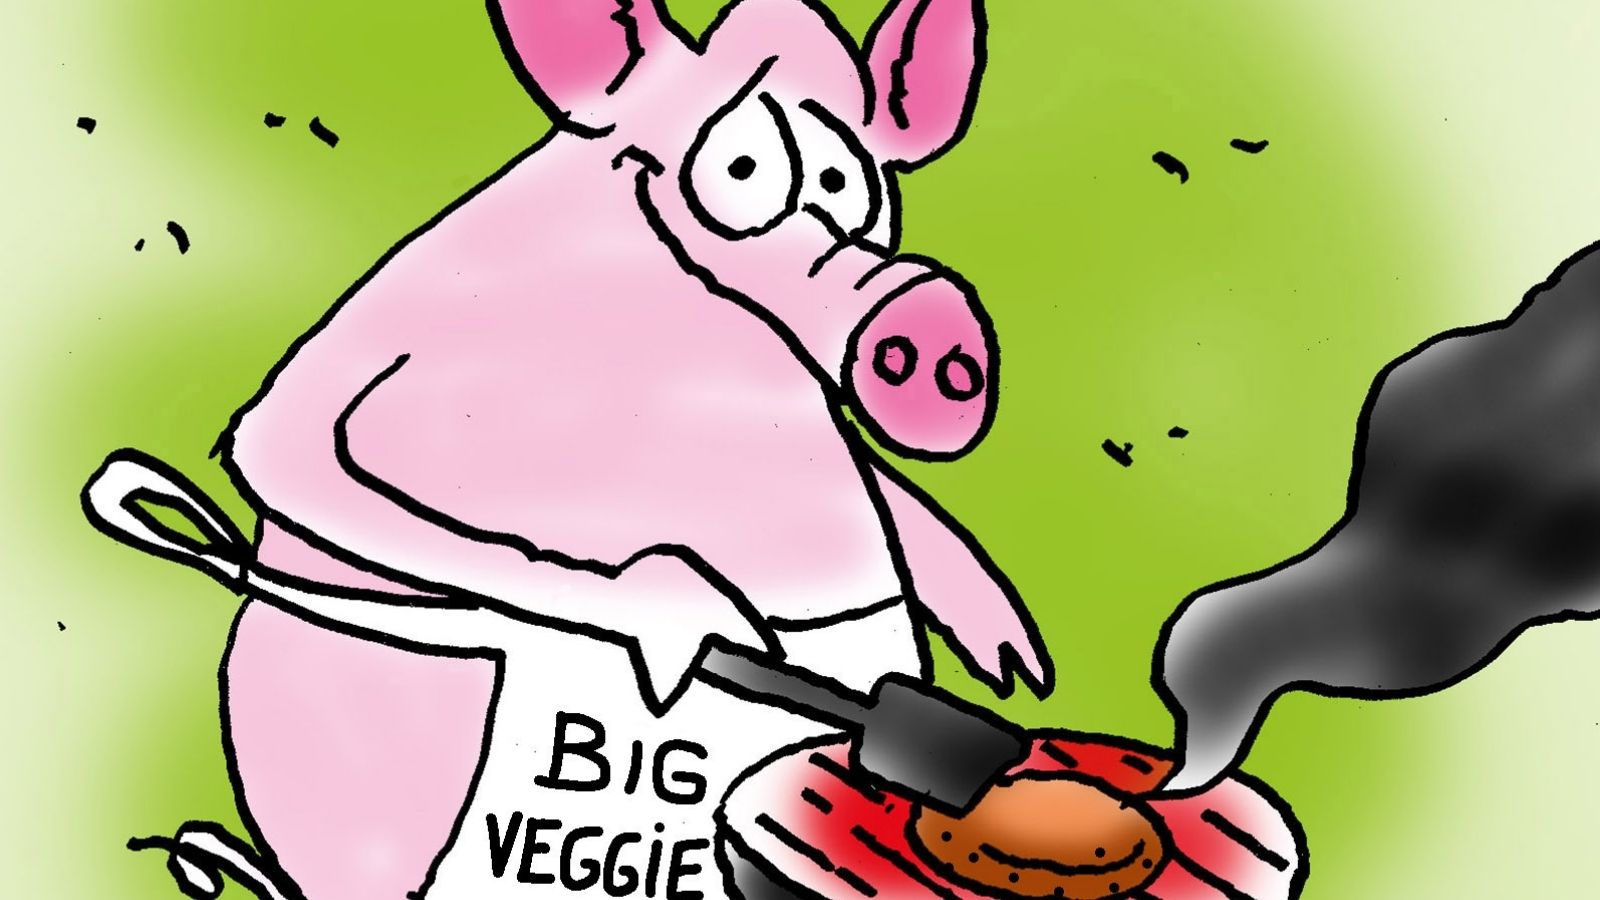 This Plant-Based Meat Alternative's Cartoon Series Questions Morality of Eating Animals